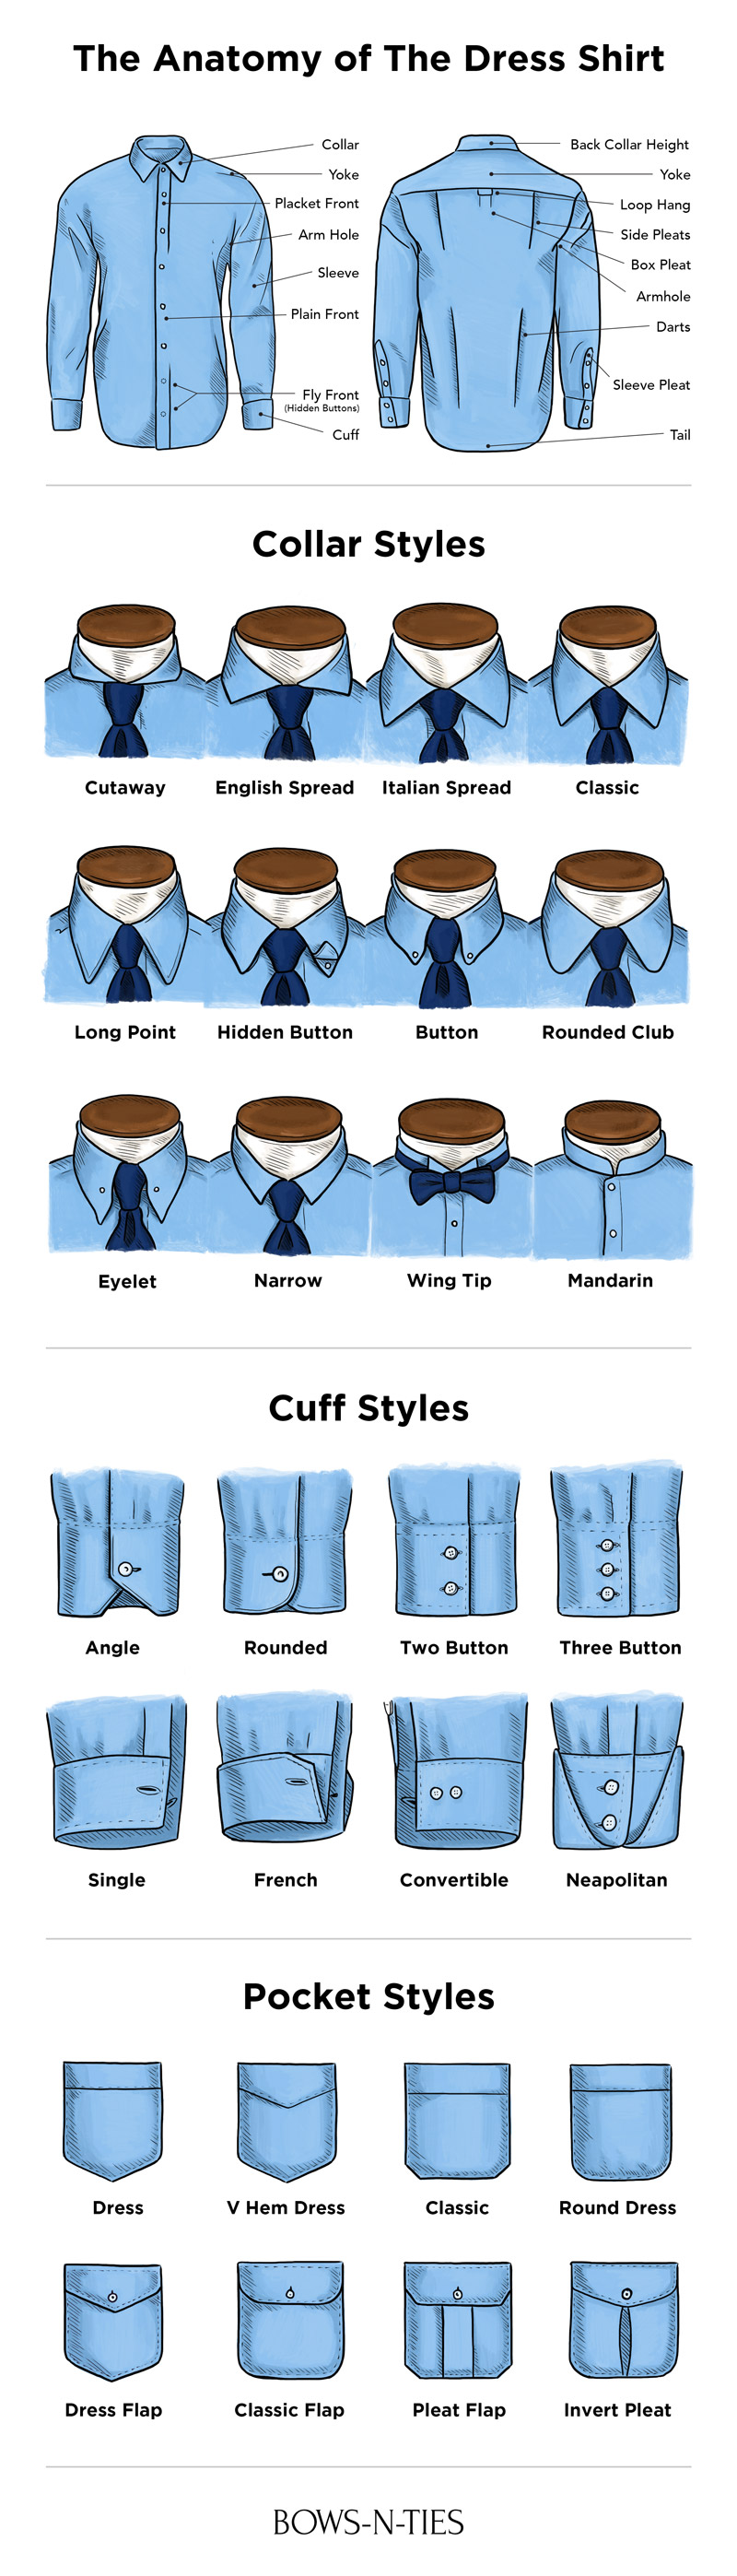 Dress Shirt Infographic